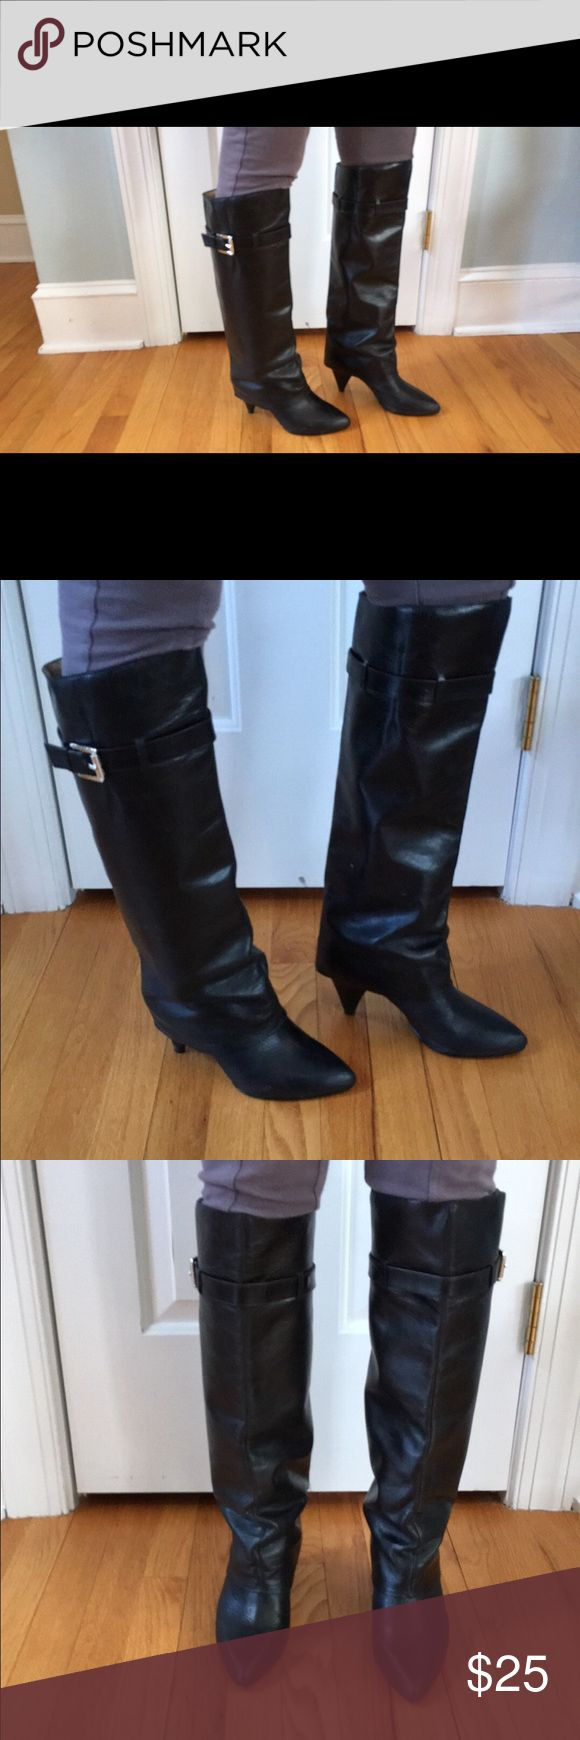 Michael Kors knee high black leather boots Black leather knee high boots in good condition. Leather is in great condition but heels are a little banged up as pictured Michael Kors Shoes